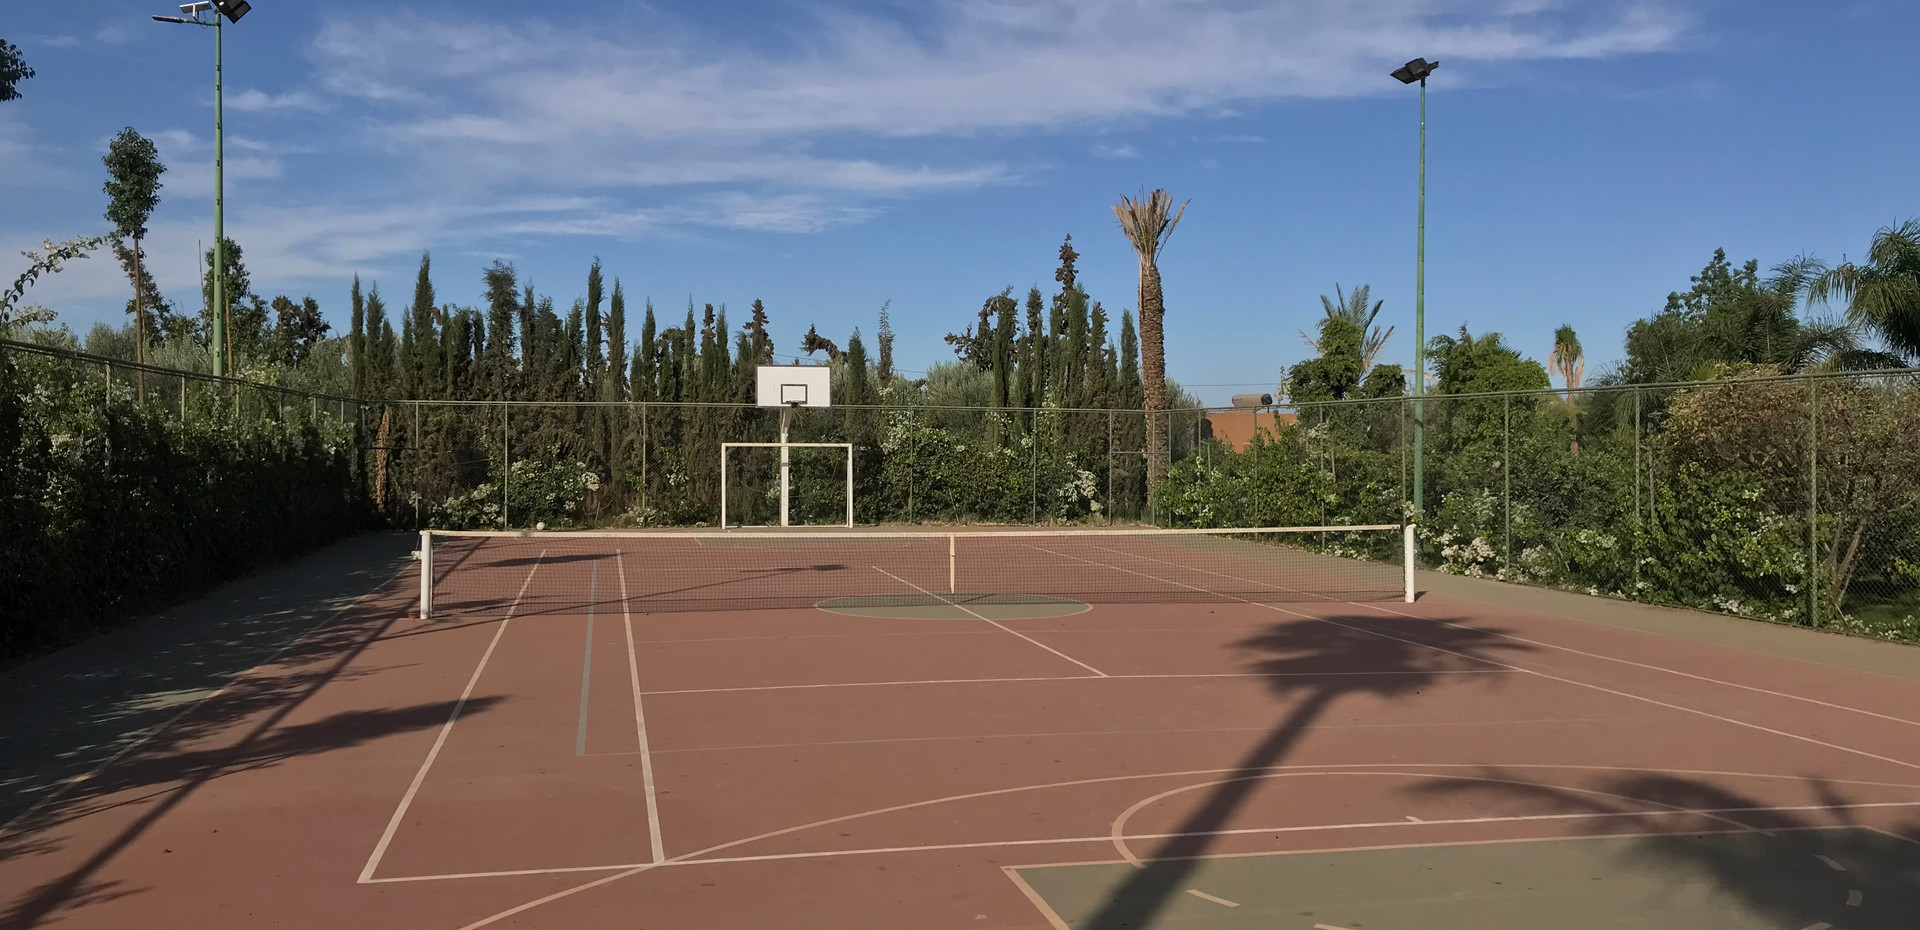 YOUR SPORTS COURT